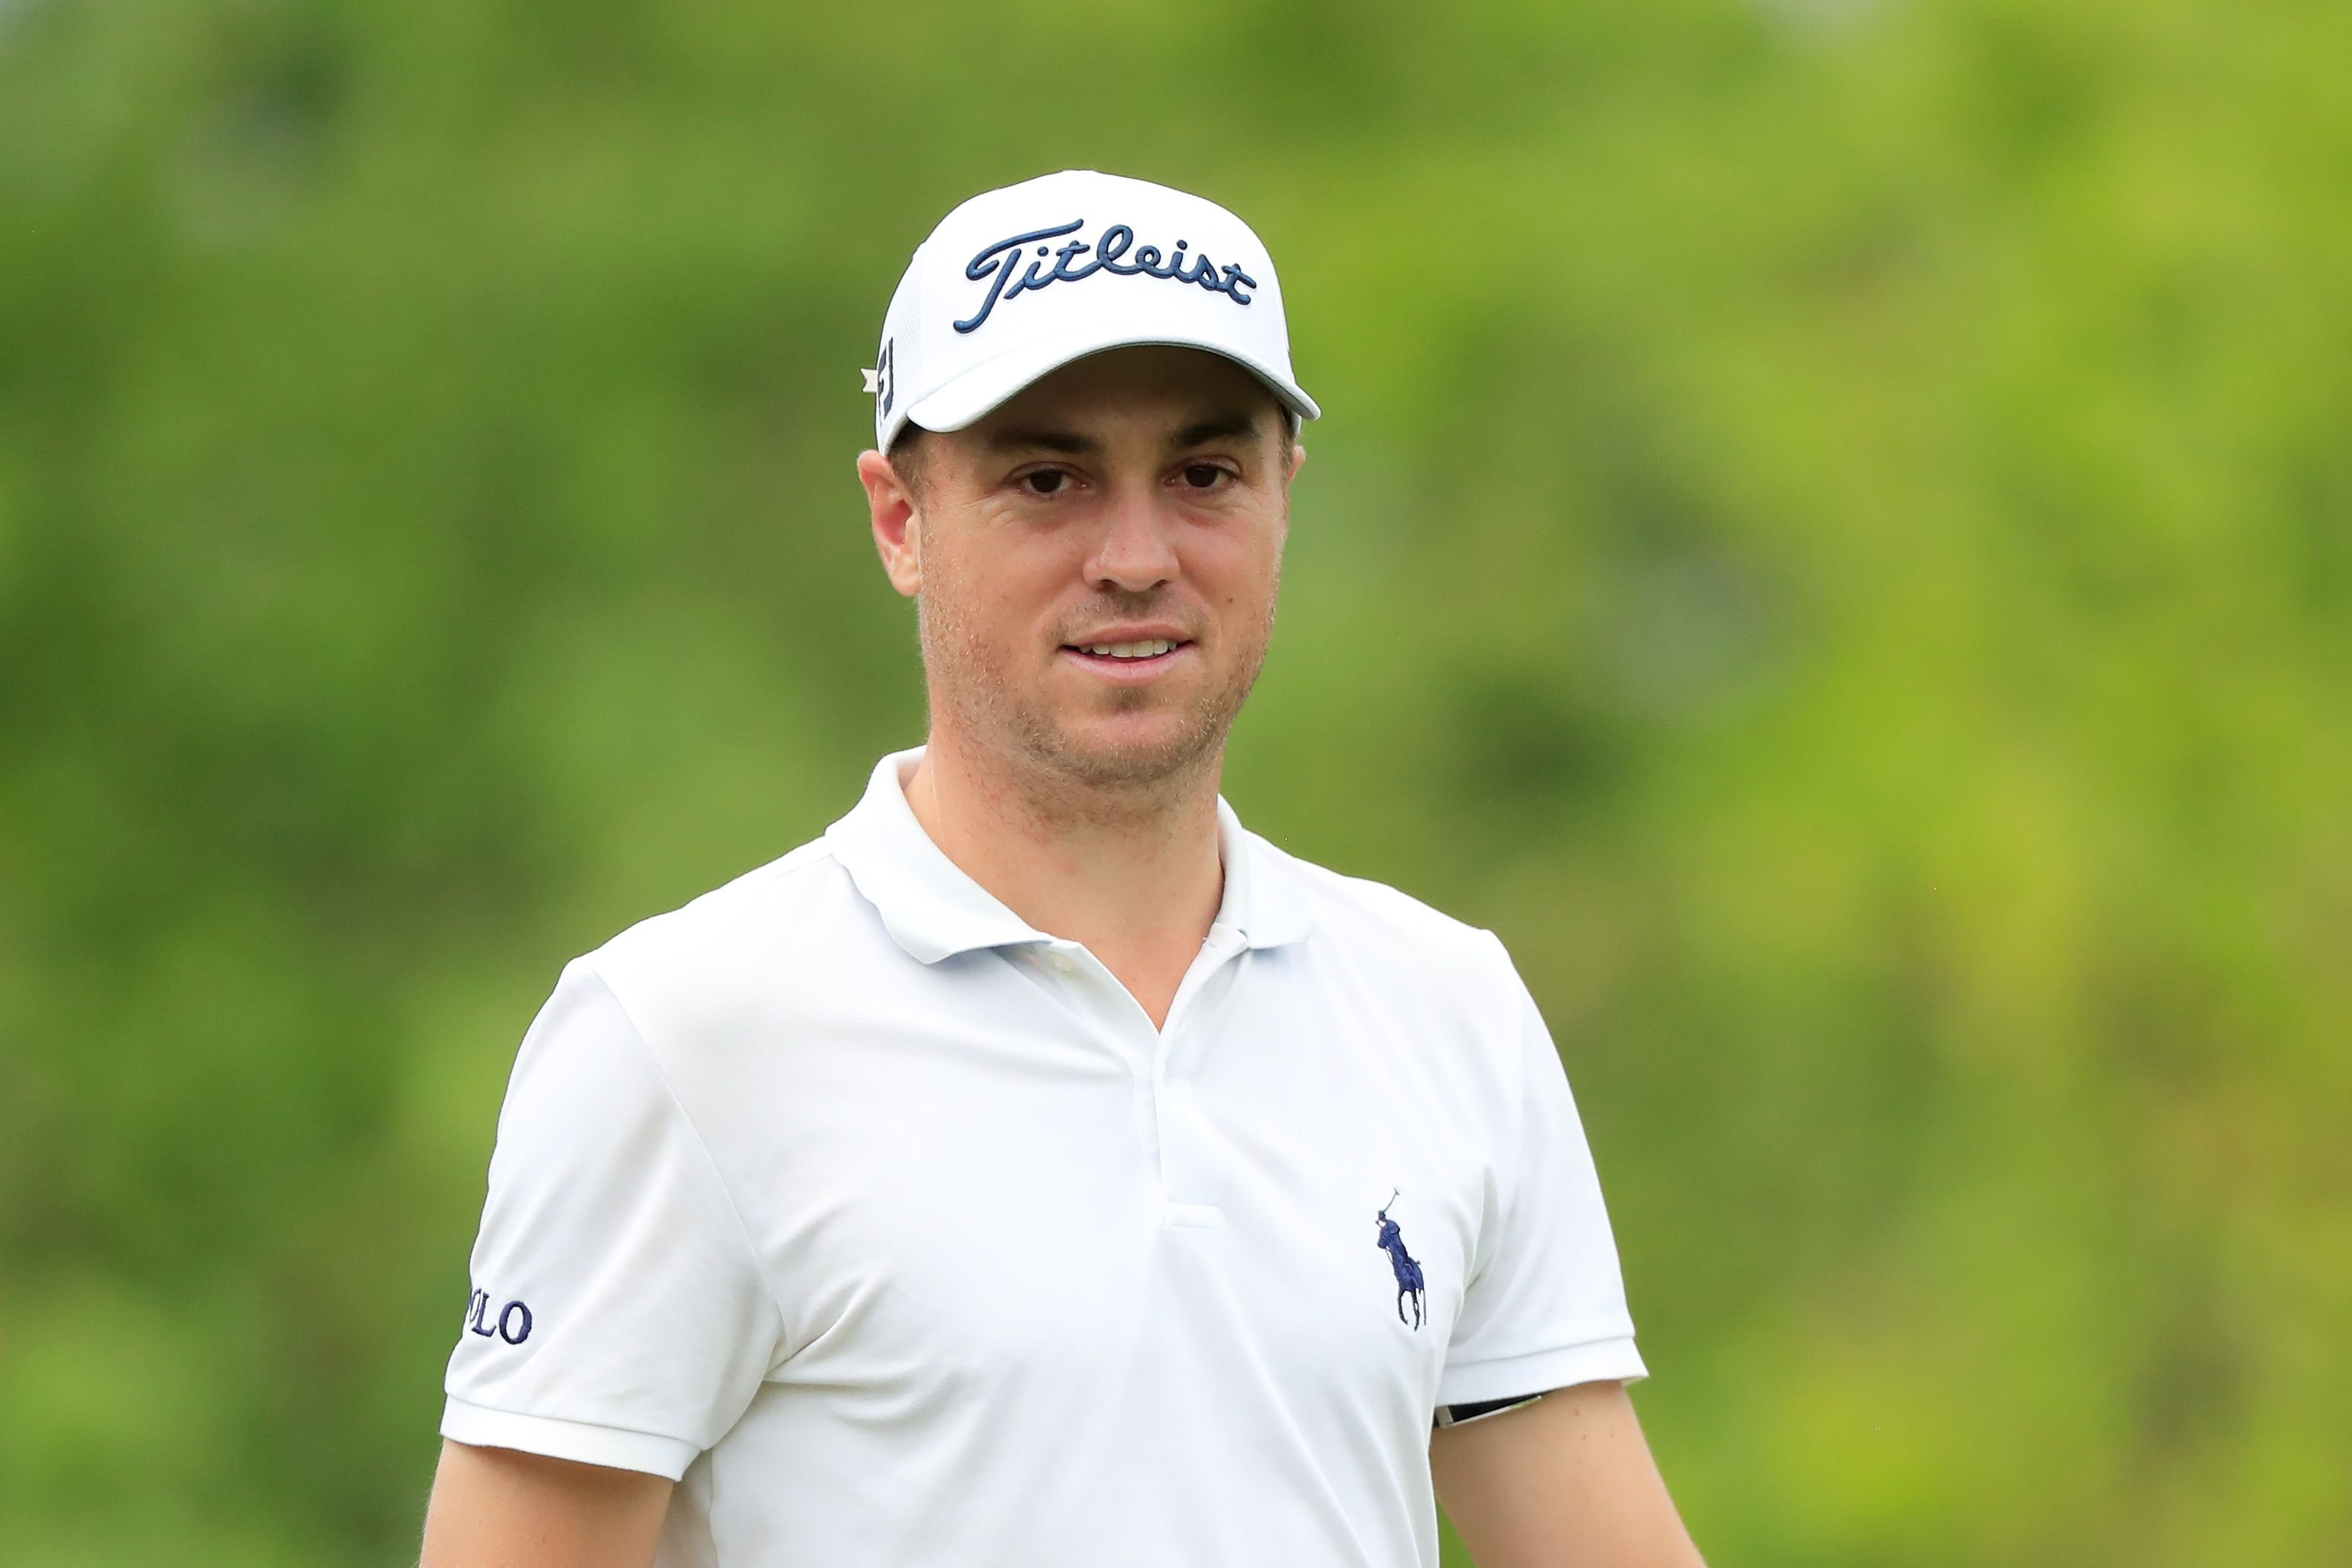 Justin Thomas during the final round of the Mayakoba Golf Classic at El Camaleón Golf Club in December 2020 in Playa del Carmen, Mexico | Source: Getty Images